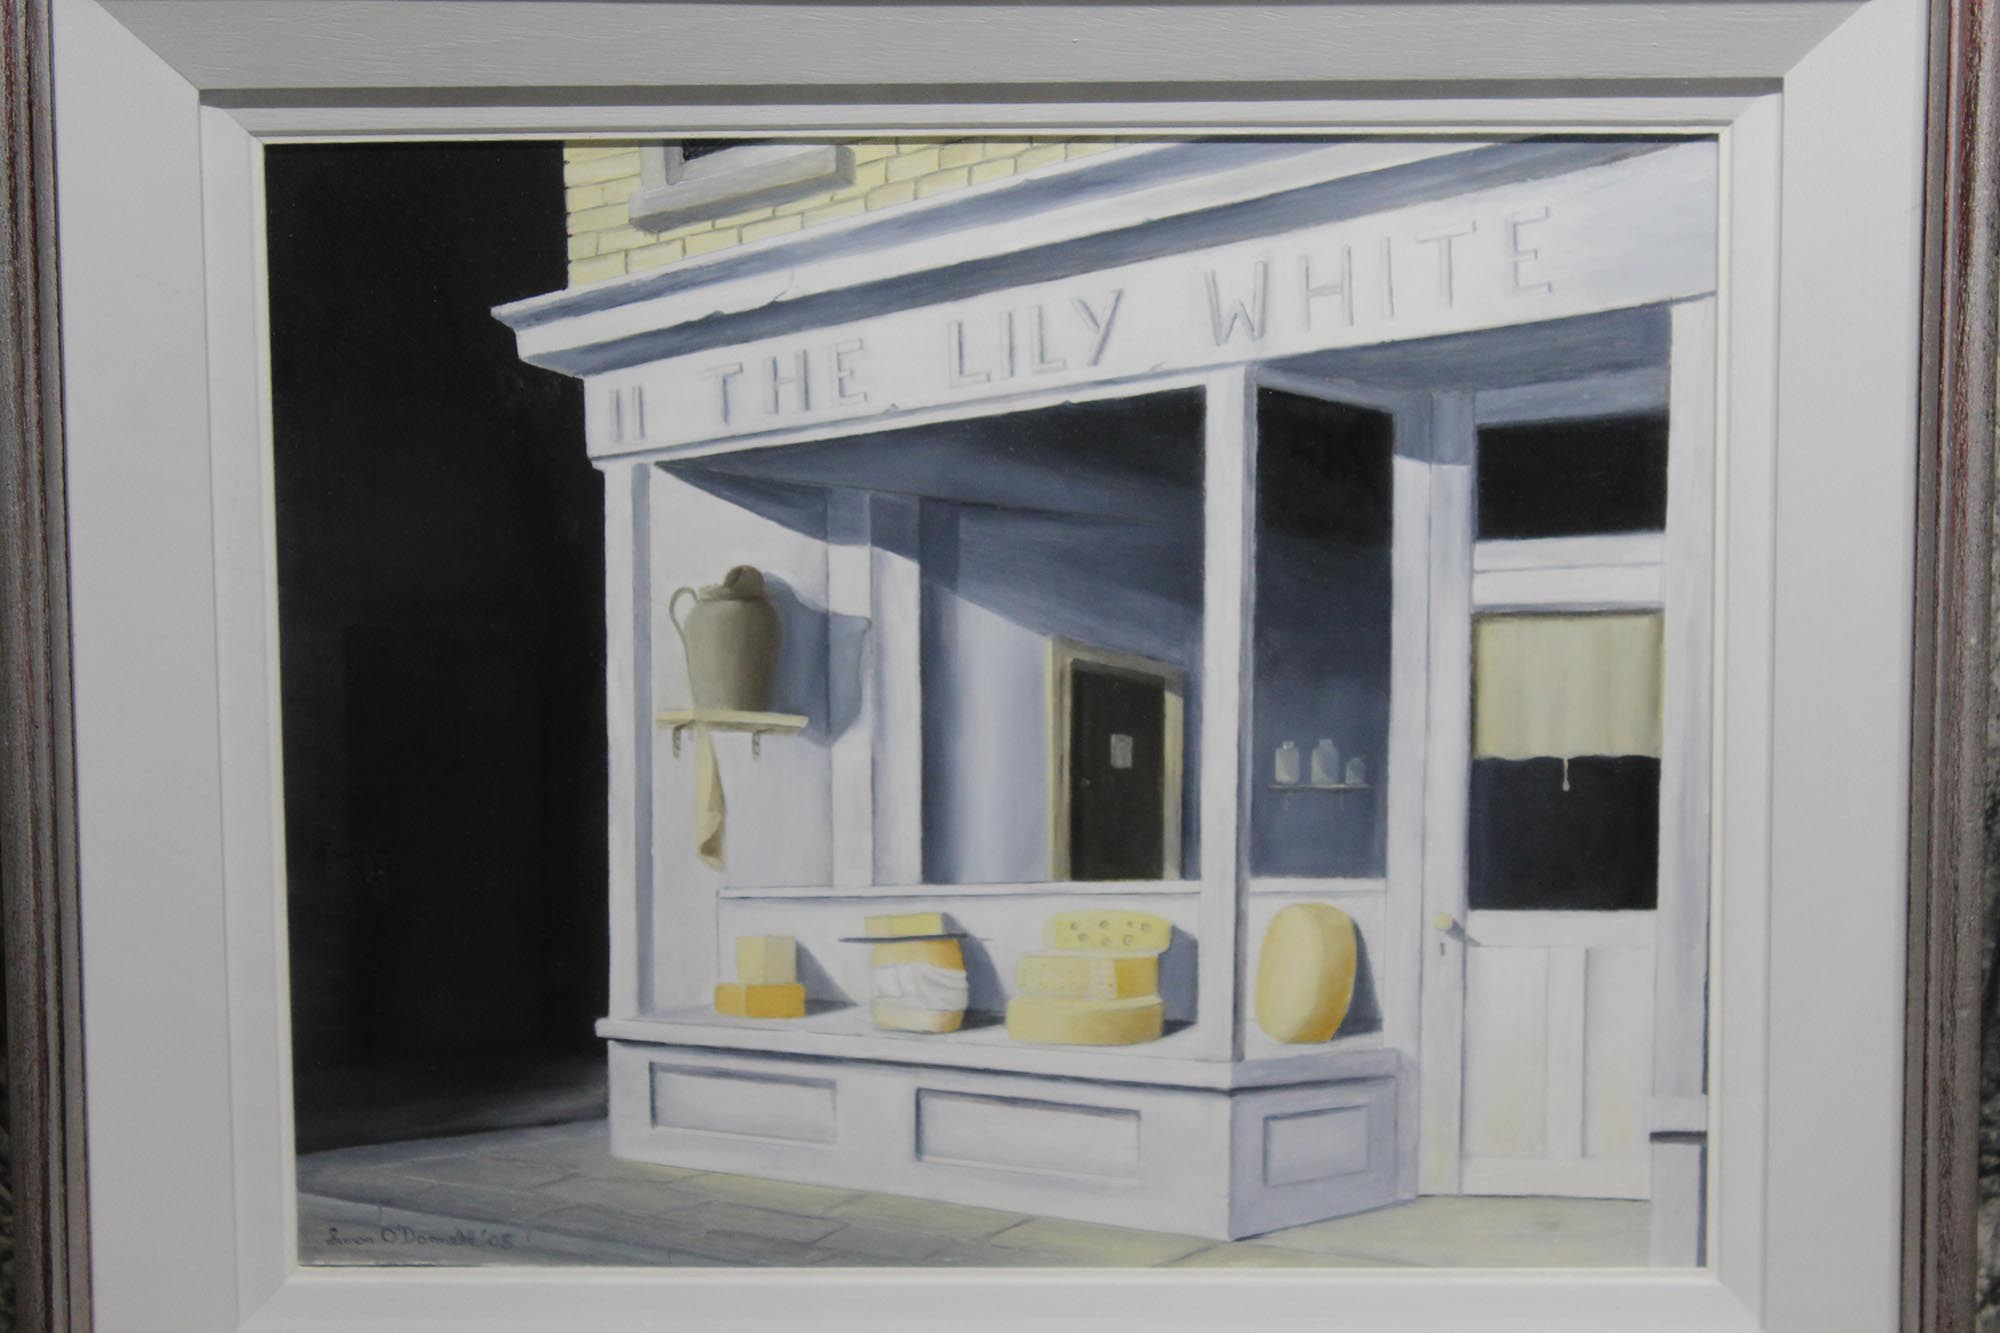 "Lot 15 - Simon O'Donnell, Contemporary THE LILY WHITE DAIRY Oil on board, 12"" x 15"" (30.5 x 38 cm), signed"